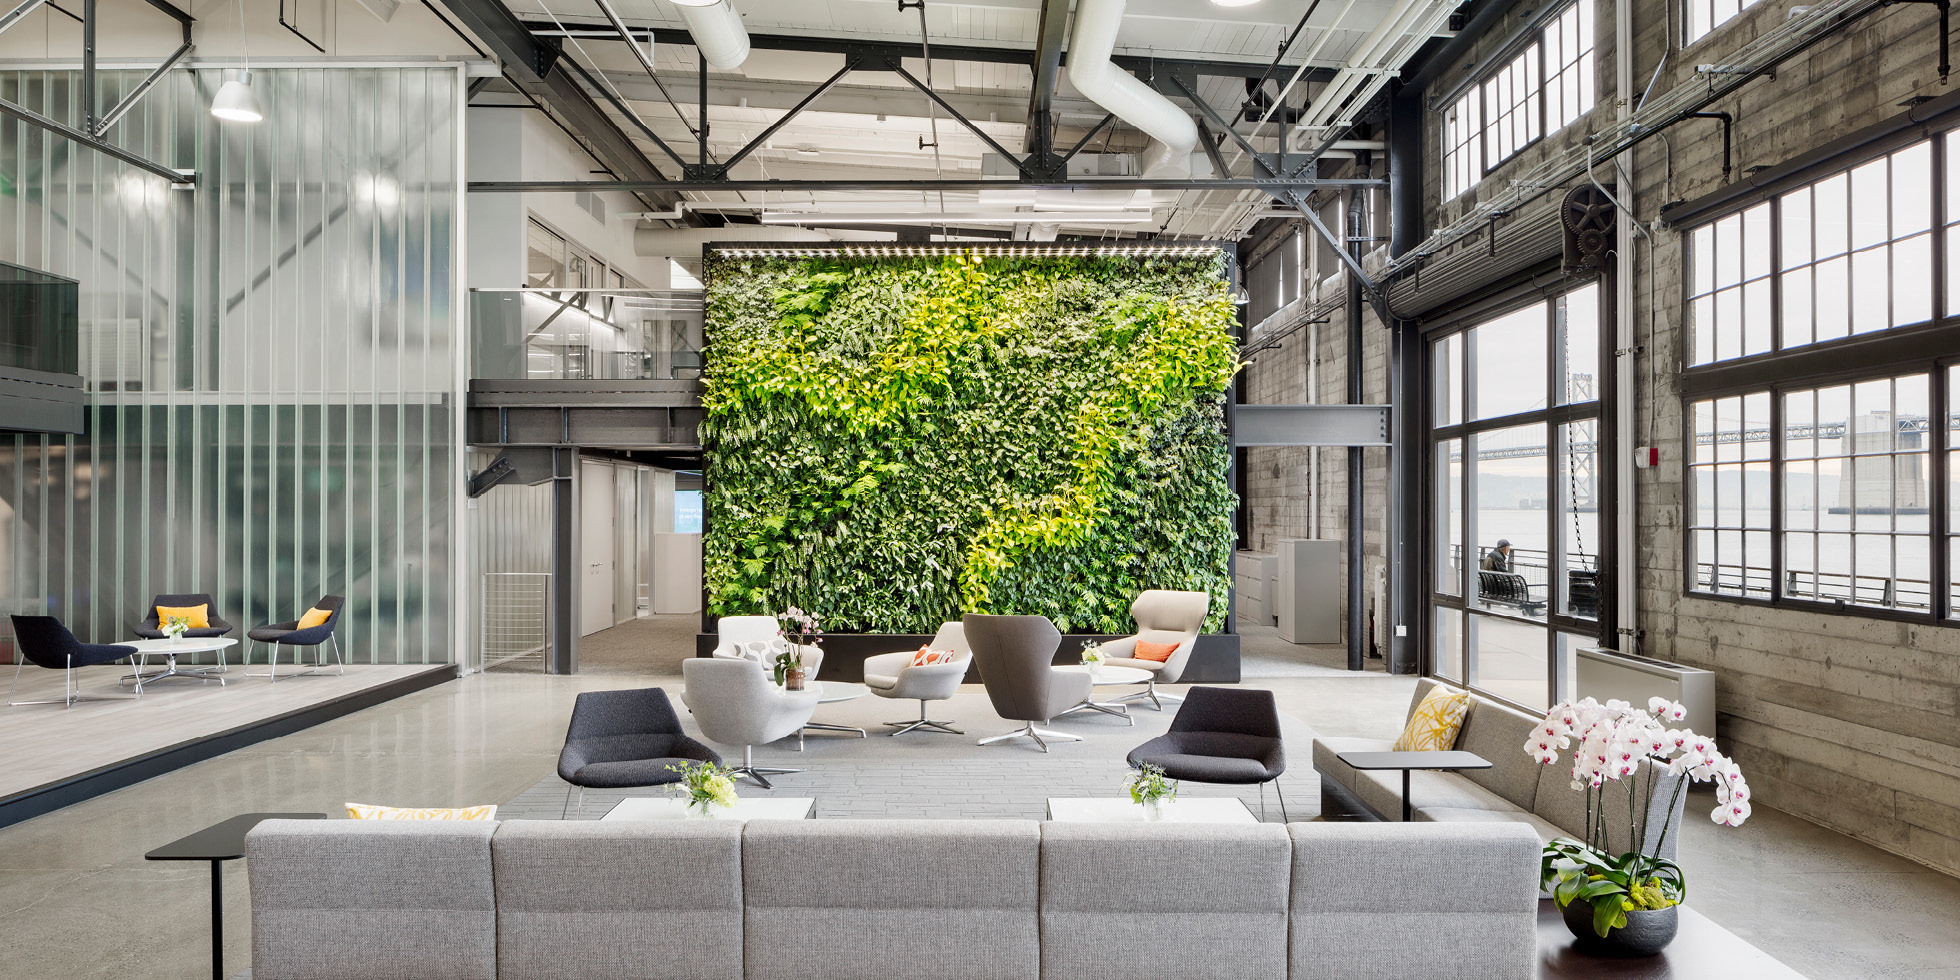 Prologis Living Wall by Habitat Horticulture - View 1